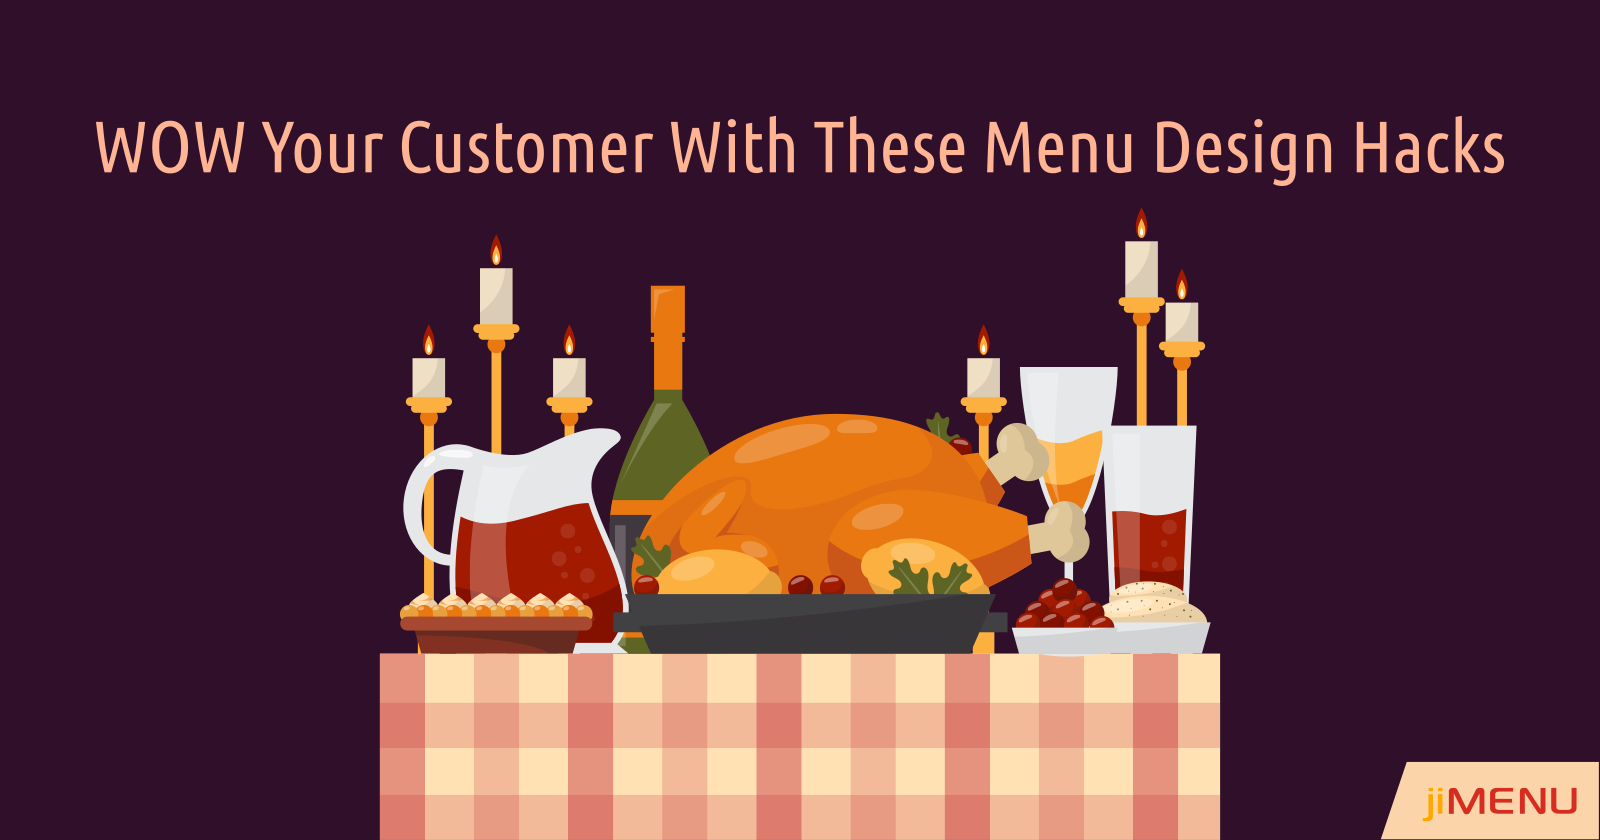 Top Menu Design Tips to Create a Great Menu